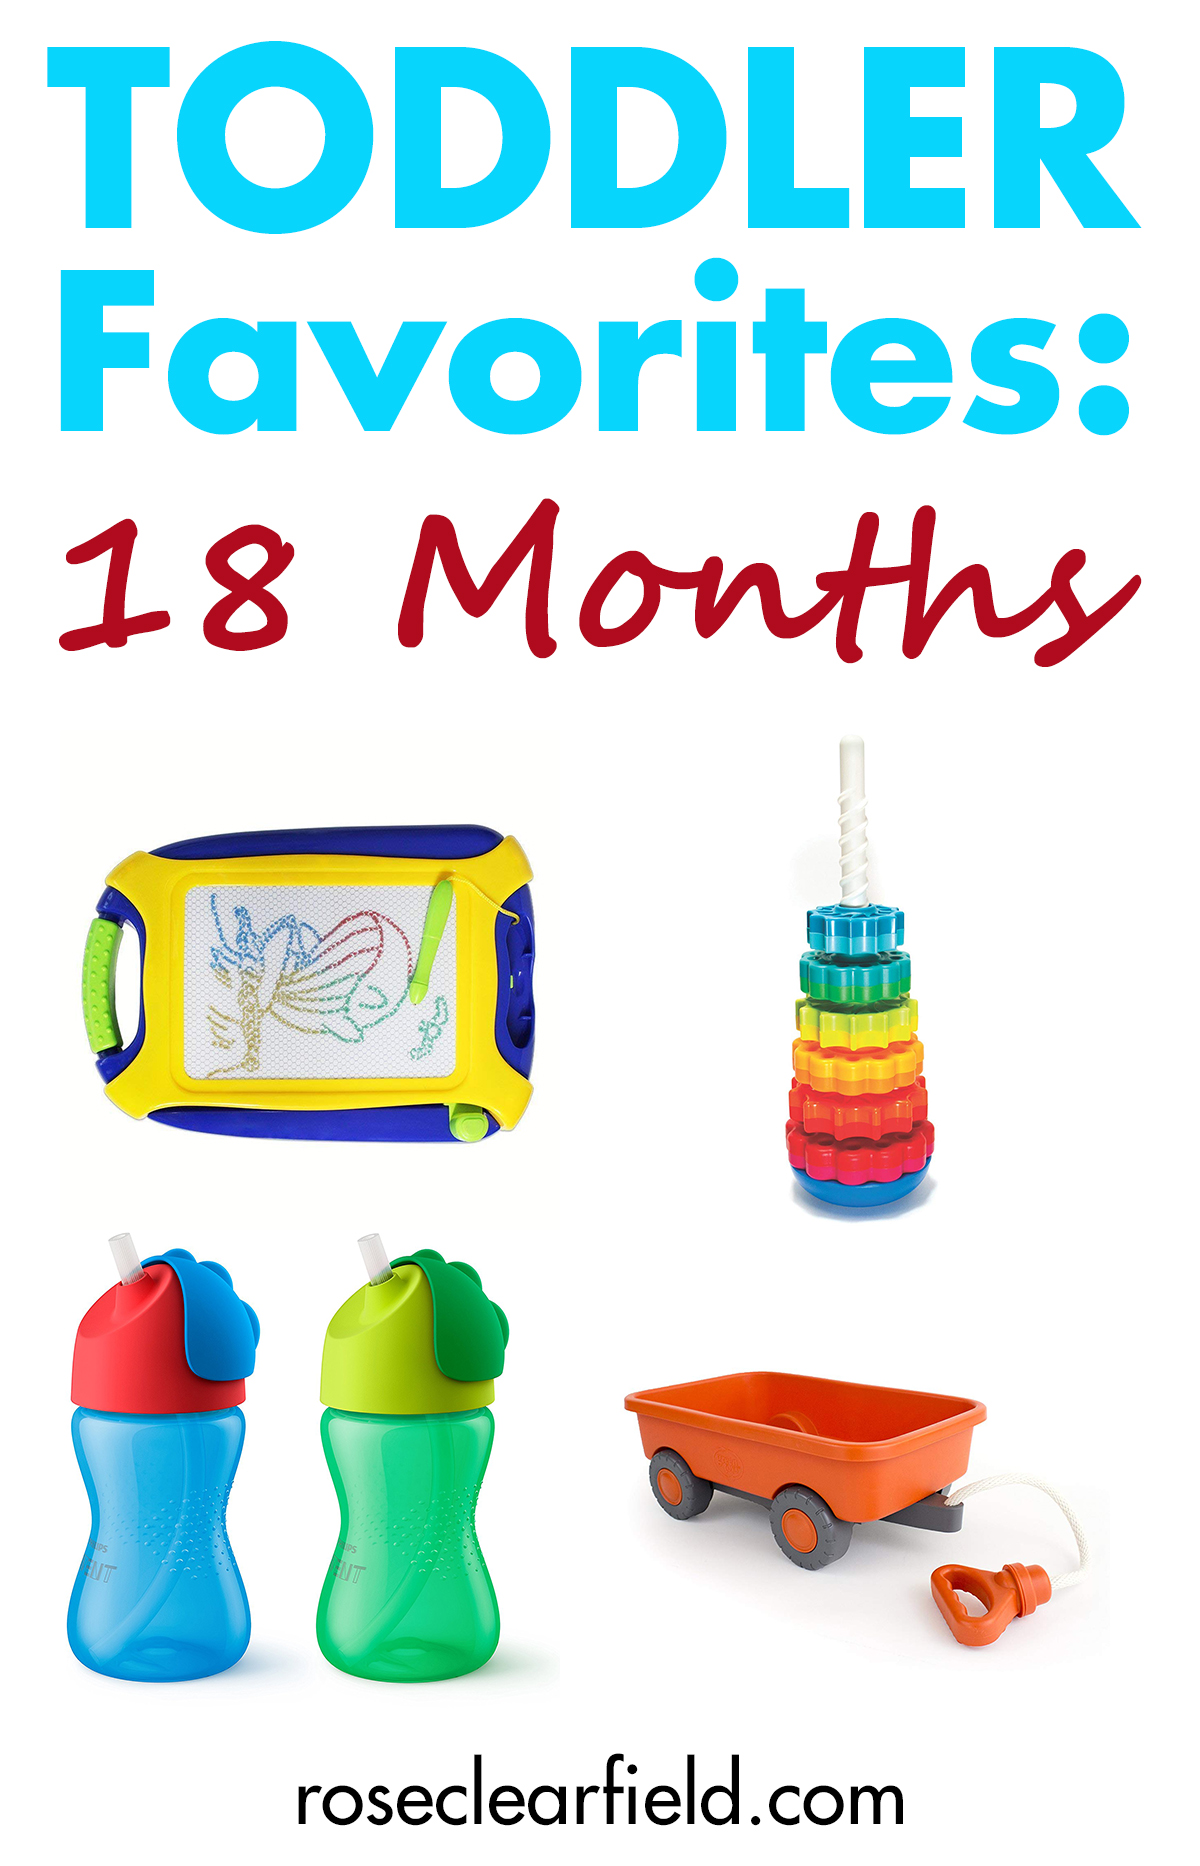 Toddler Favorites: 18 Months | https://www.roseclearfield.com